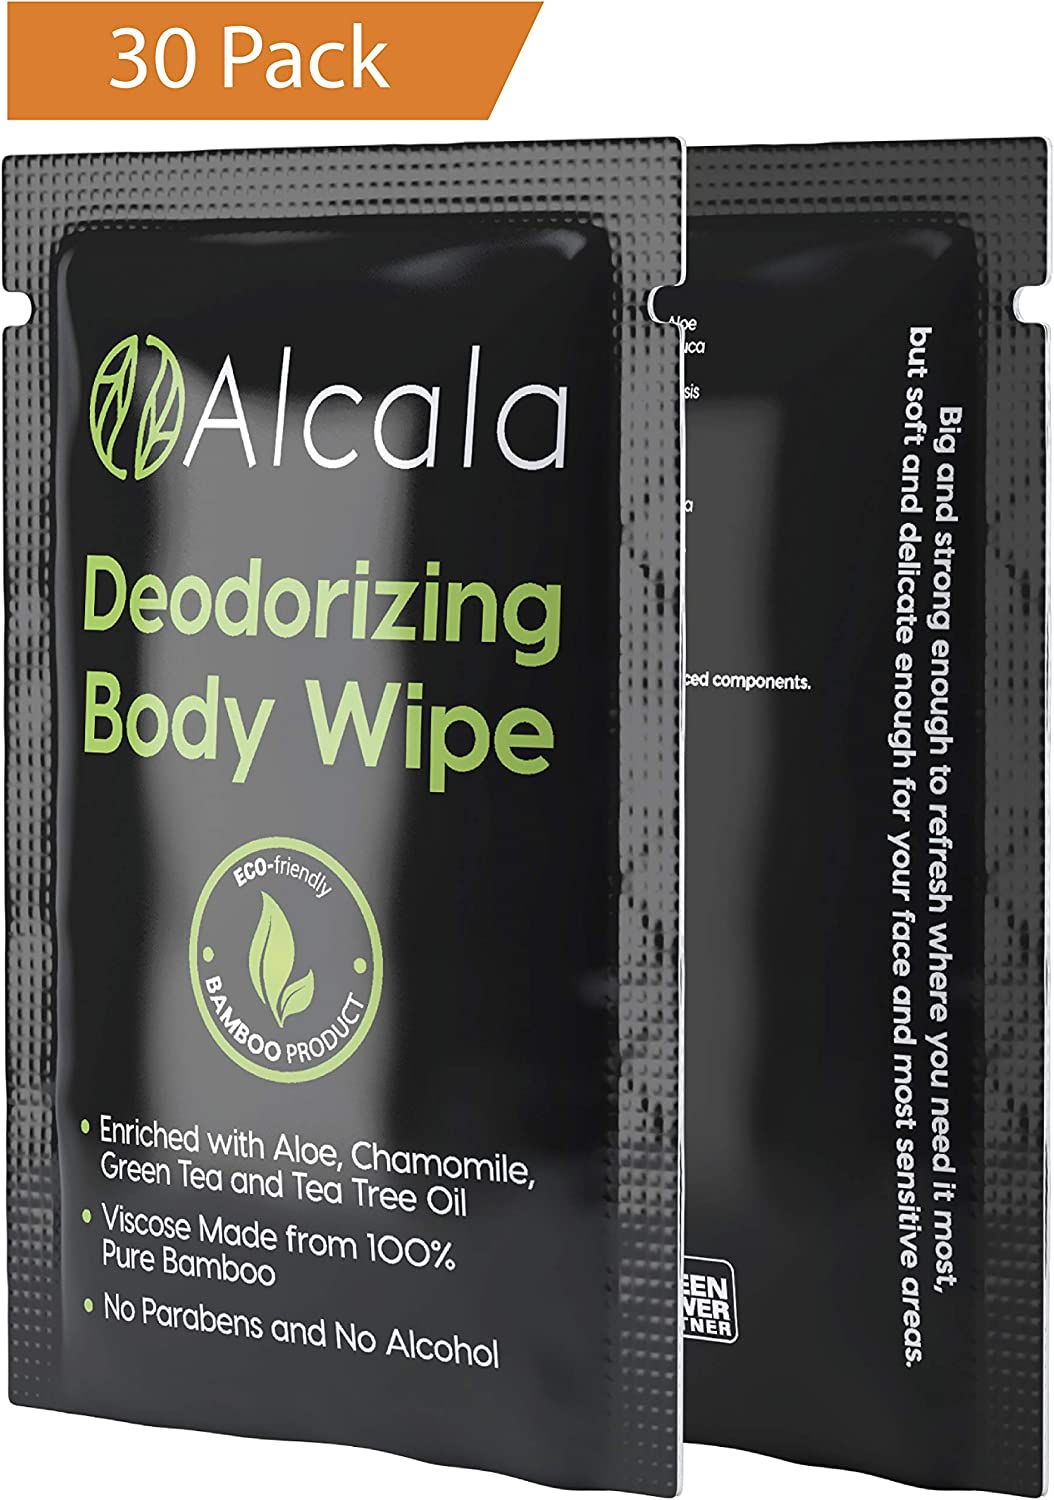 Deodorizing Body Wipes 100% Pure Bamboo with Tea Tree Oil, Individually Wrapped Biodegradable Shower Wipes, Extra Large 10 x10 inches (30 Pack)